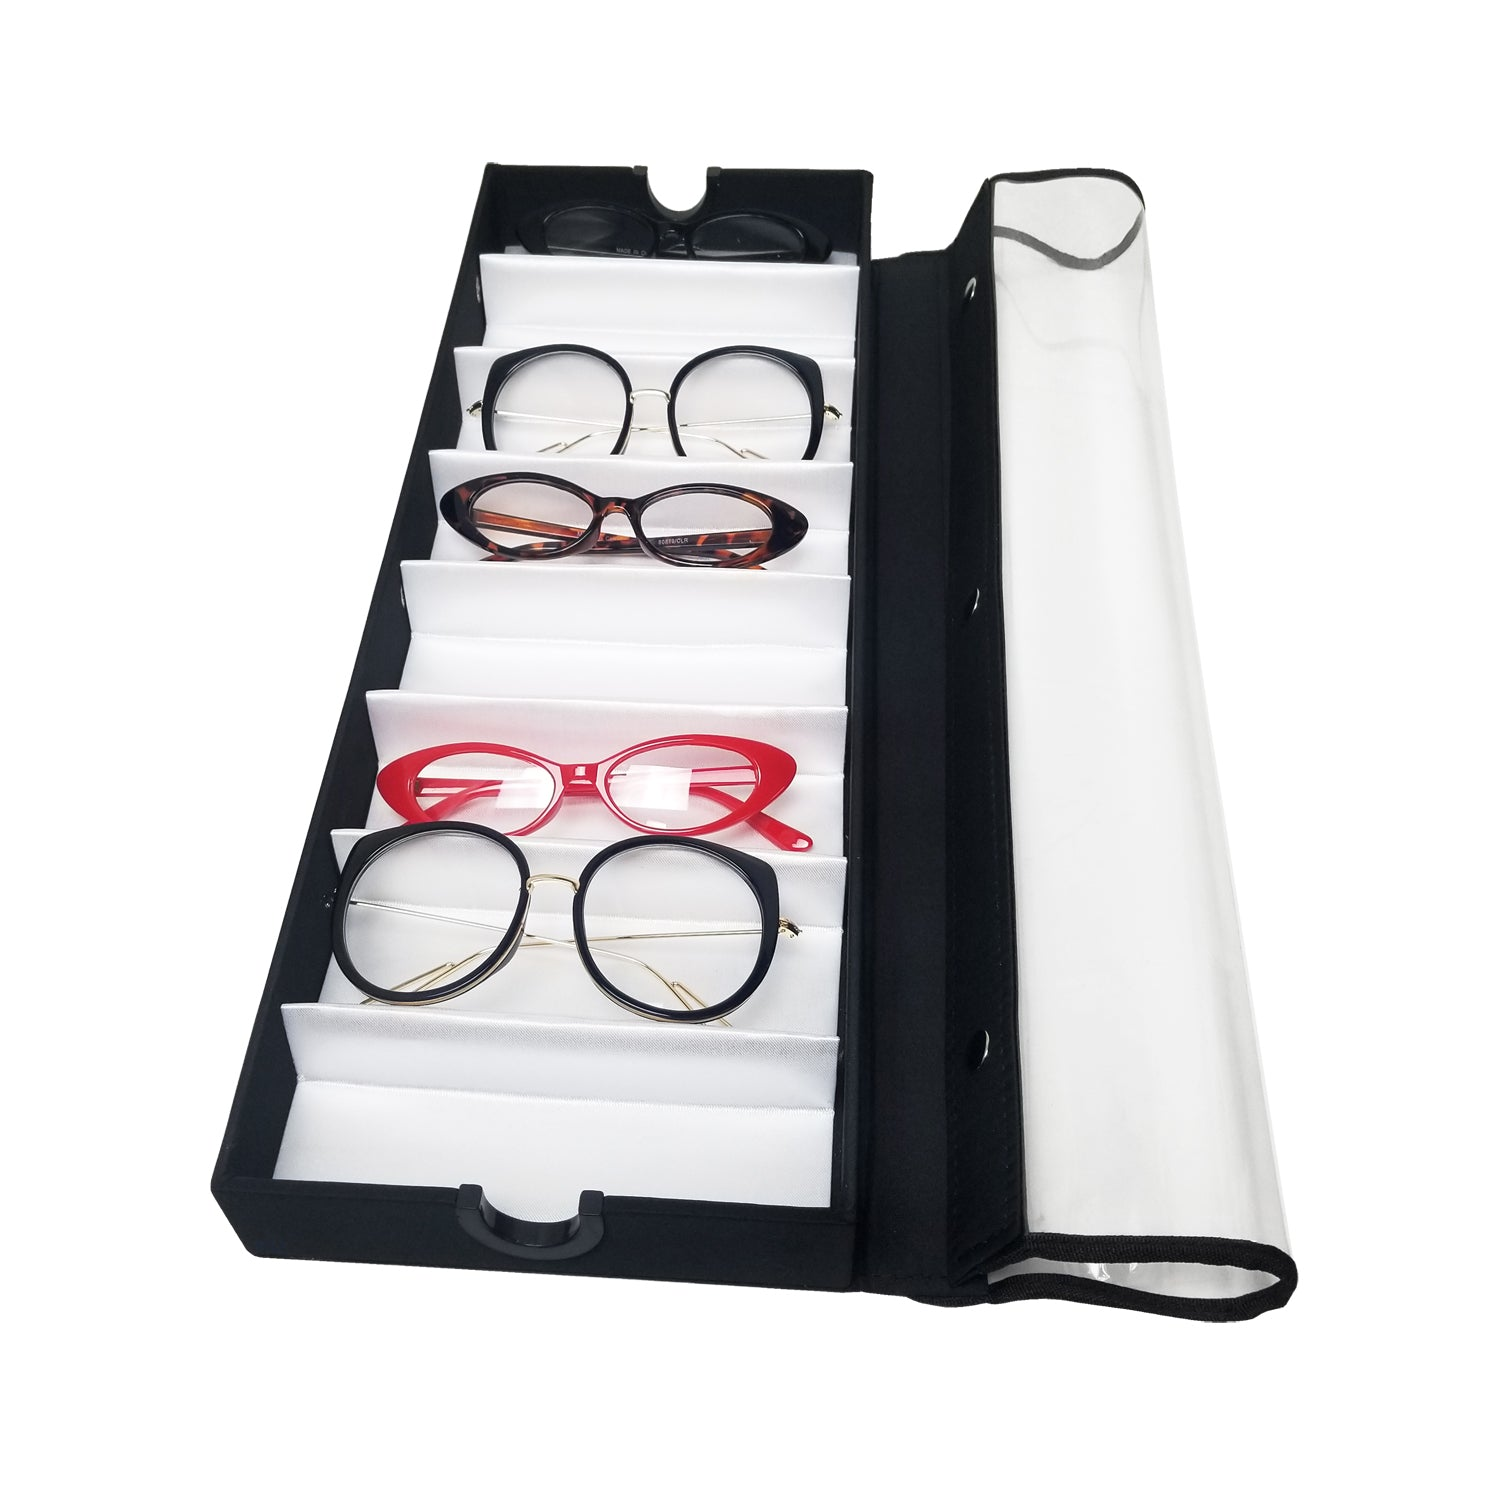 #TR-18BC View Top Eyewear Case For 8 Pairs Small To Medium Eyewears. With Clear Vinyl Cover On Top.